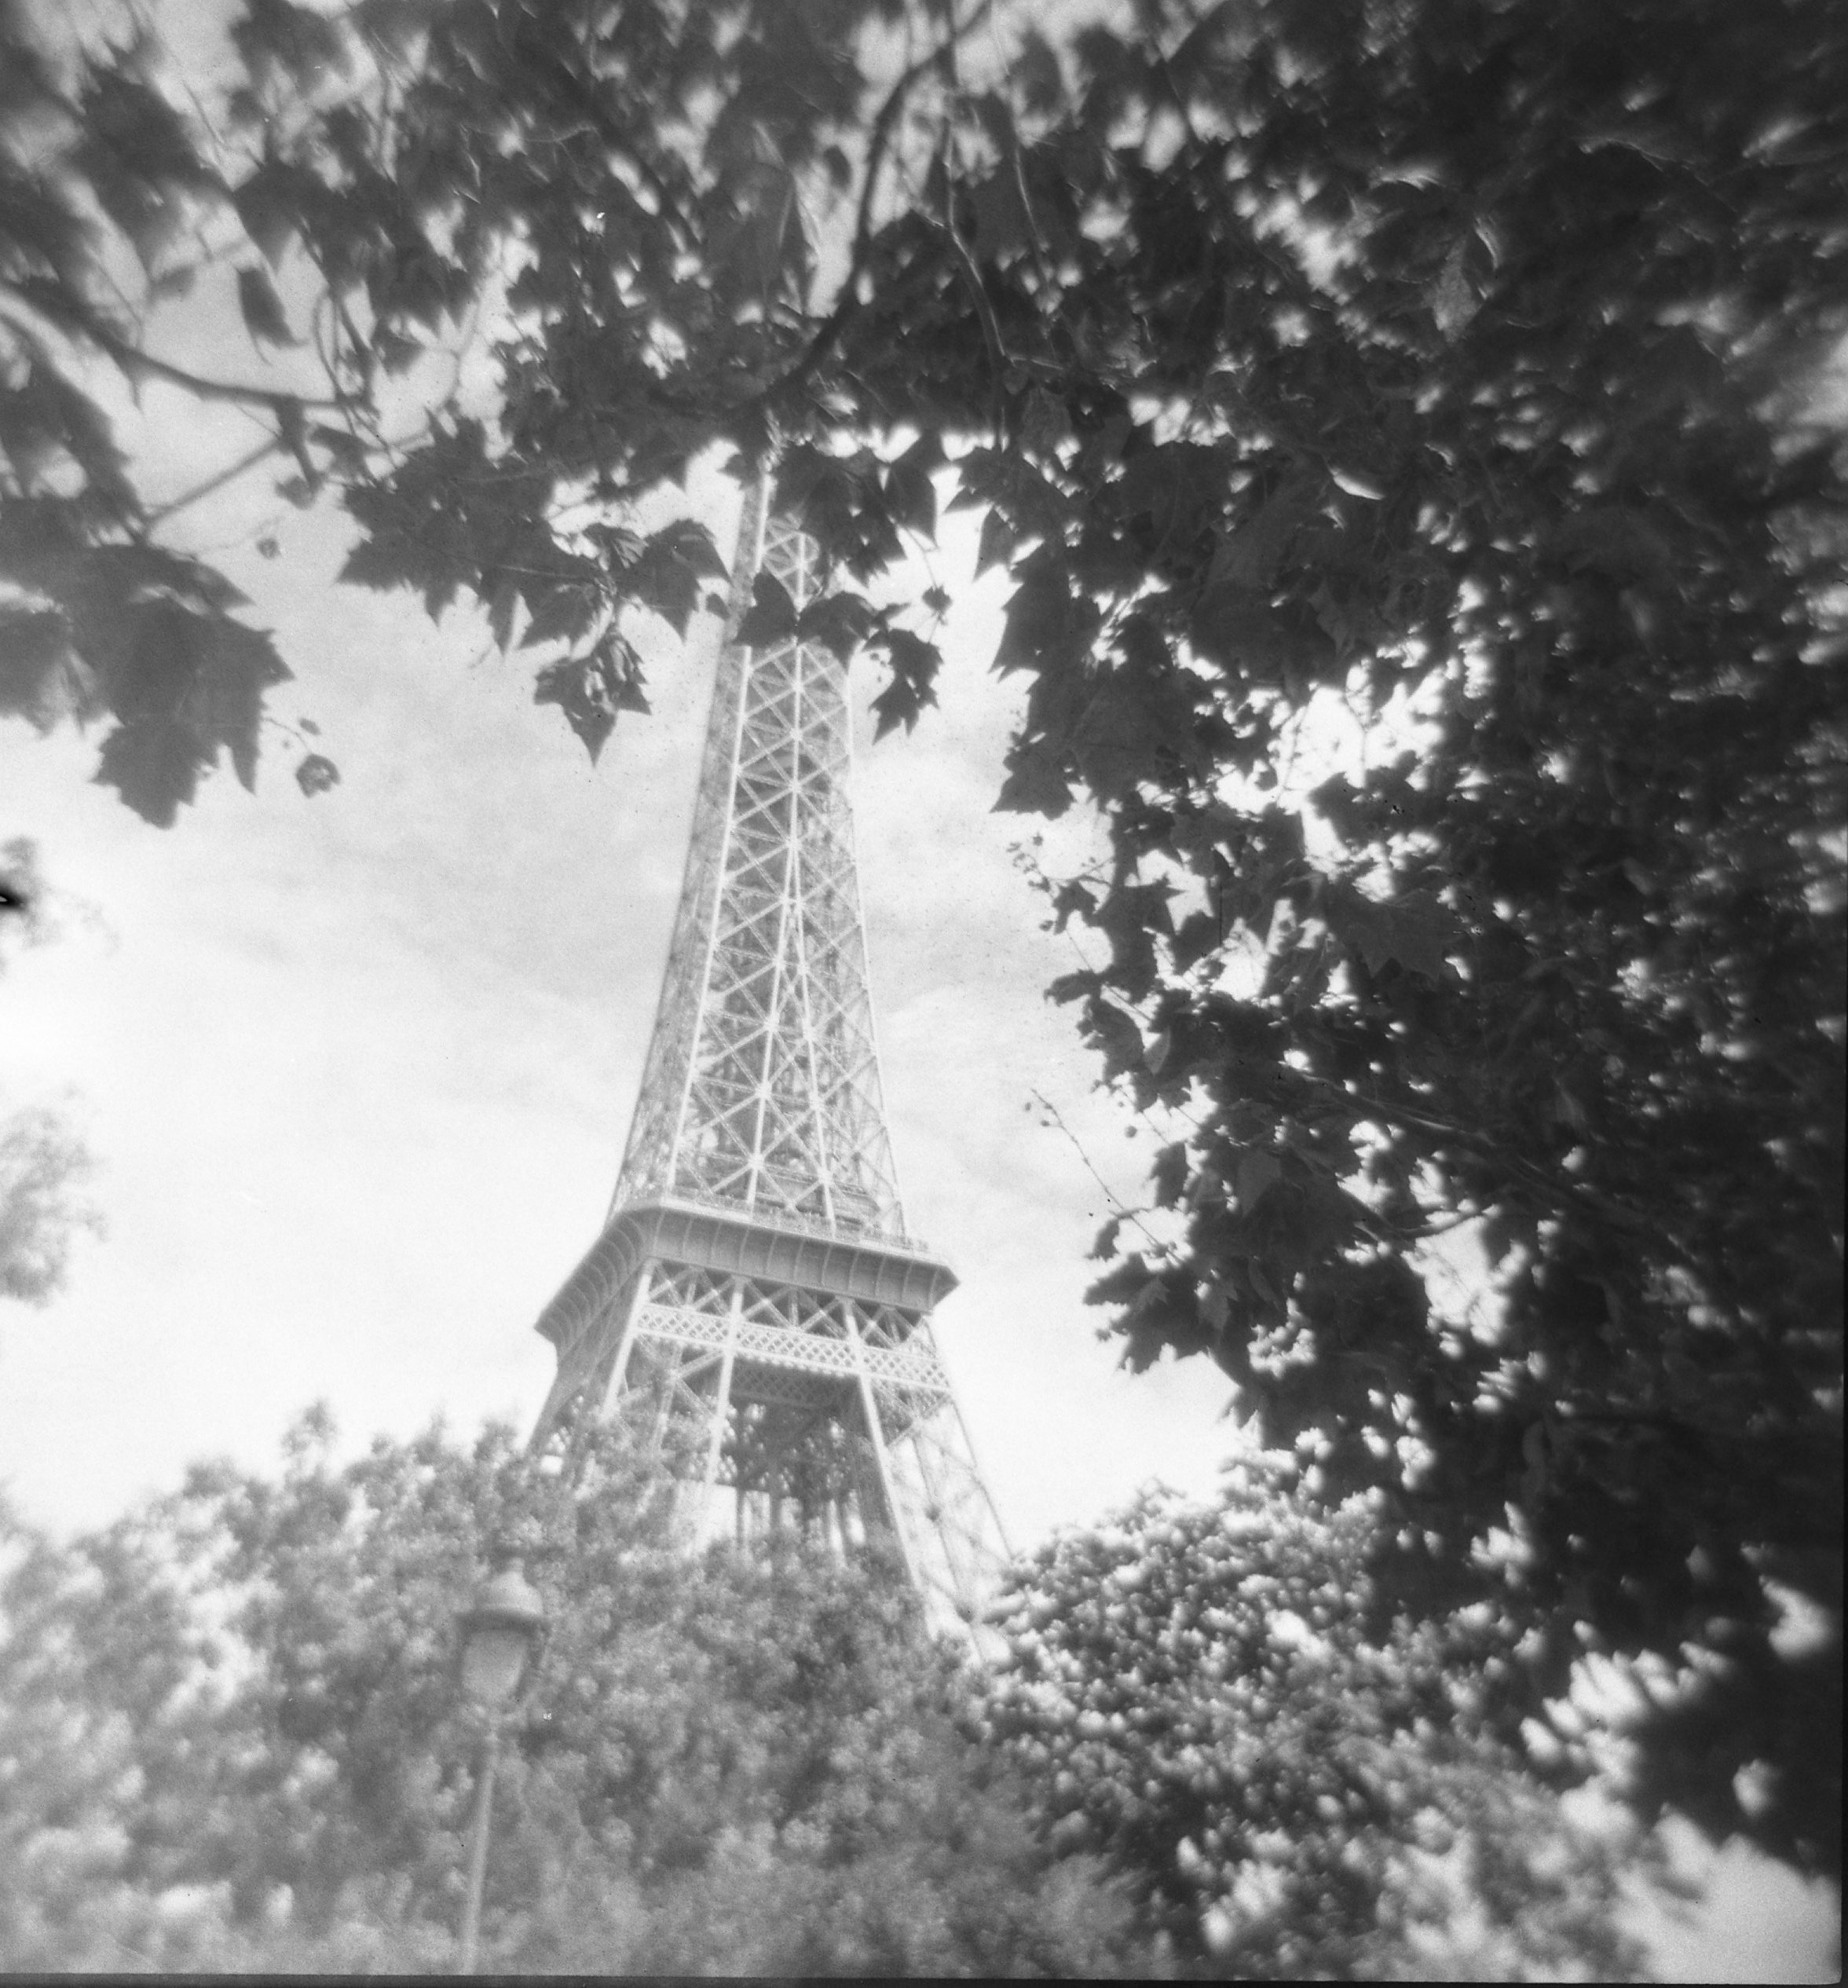 black and white film photo of the Eiffel Tower